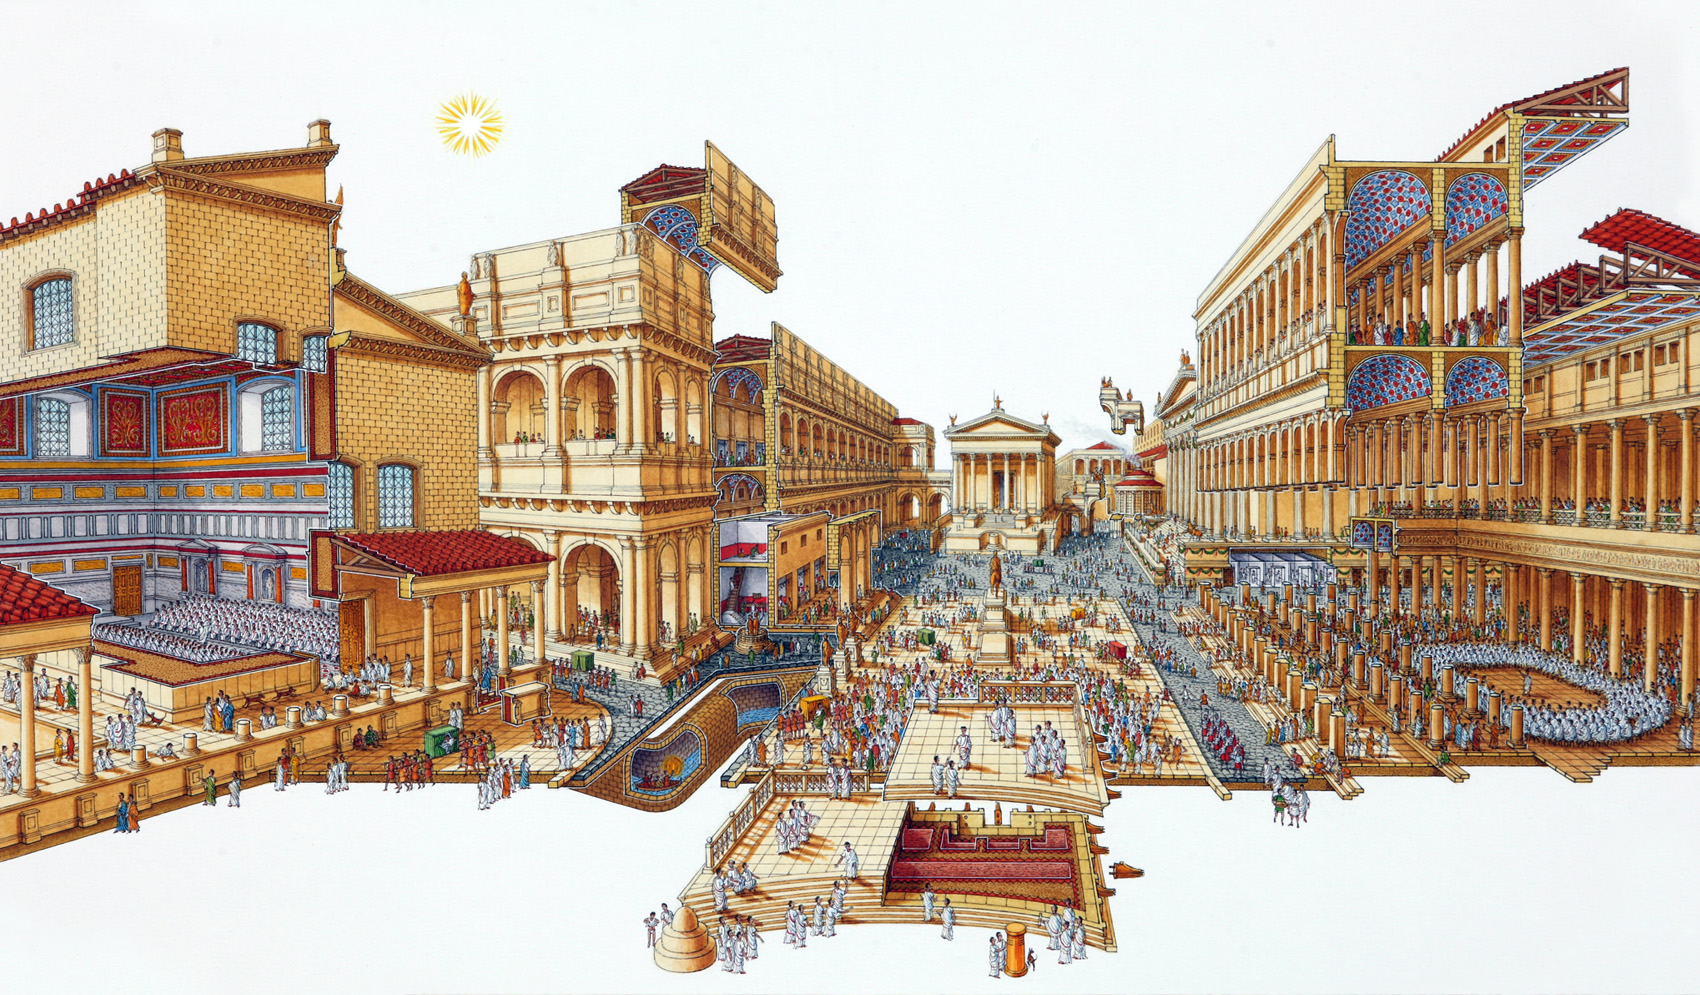 Stephen Biesty - Illustrator - Exploded Views - Roman Forum